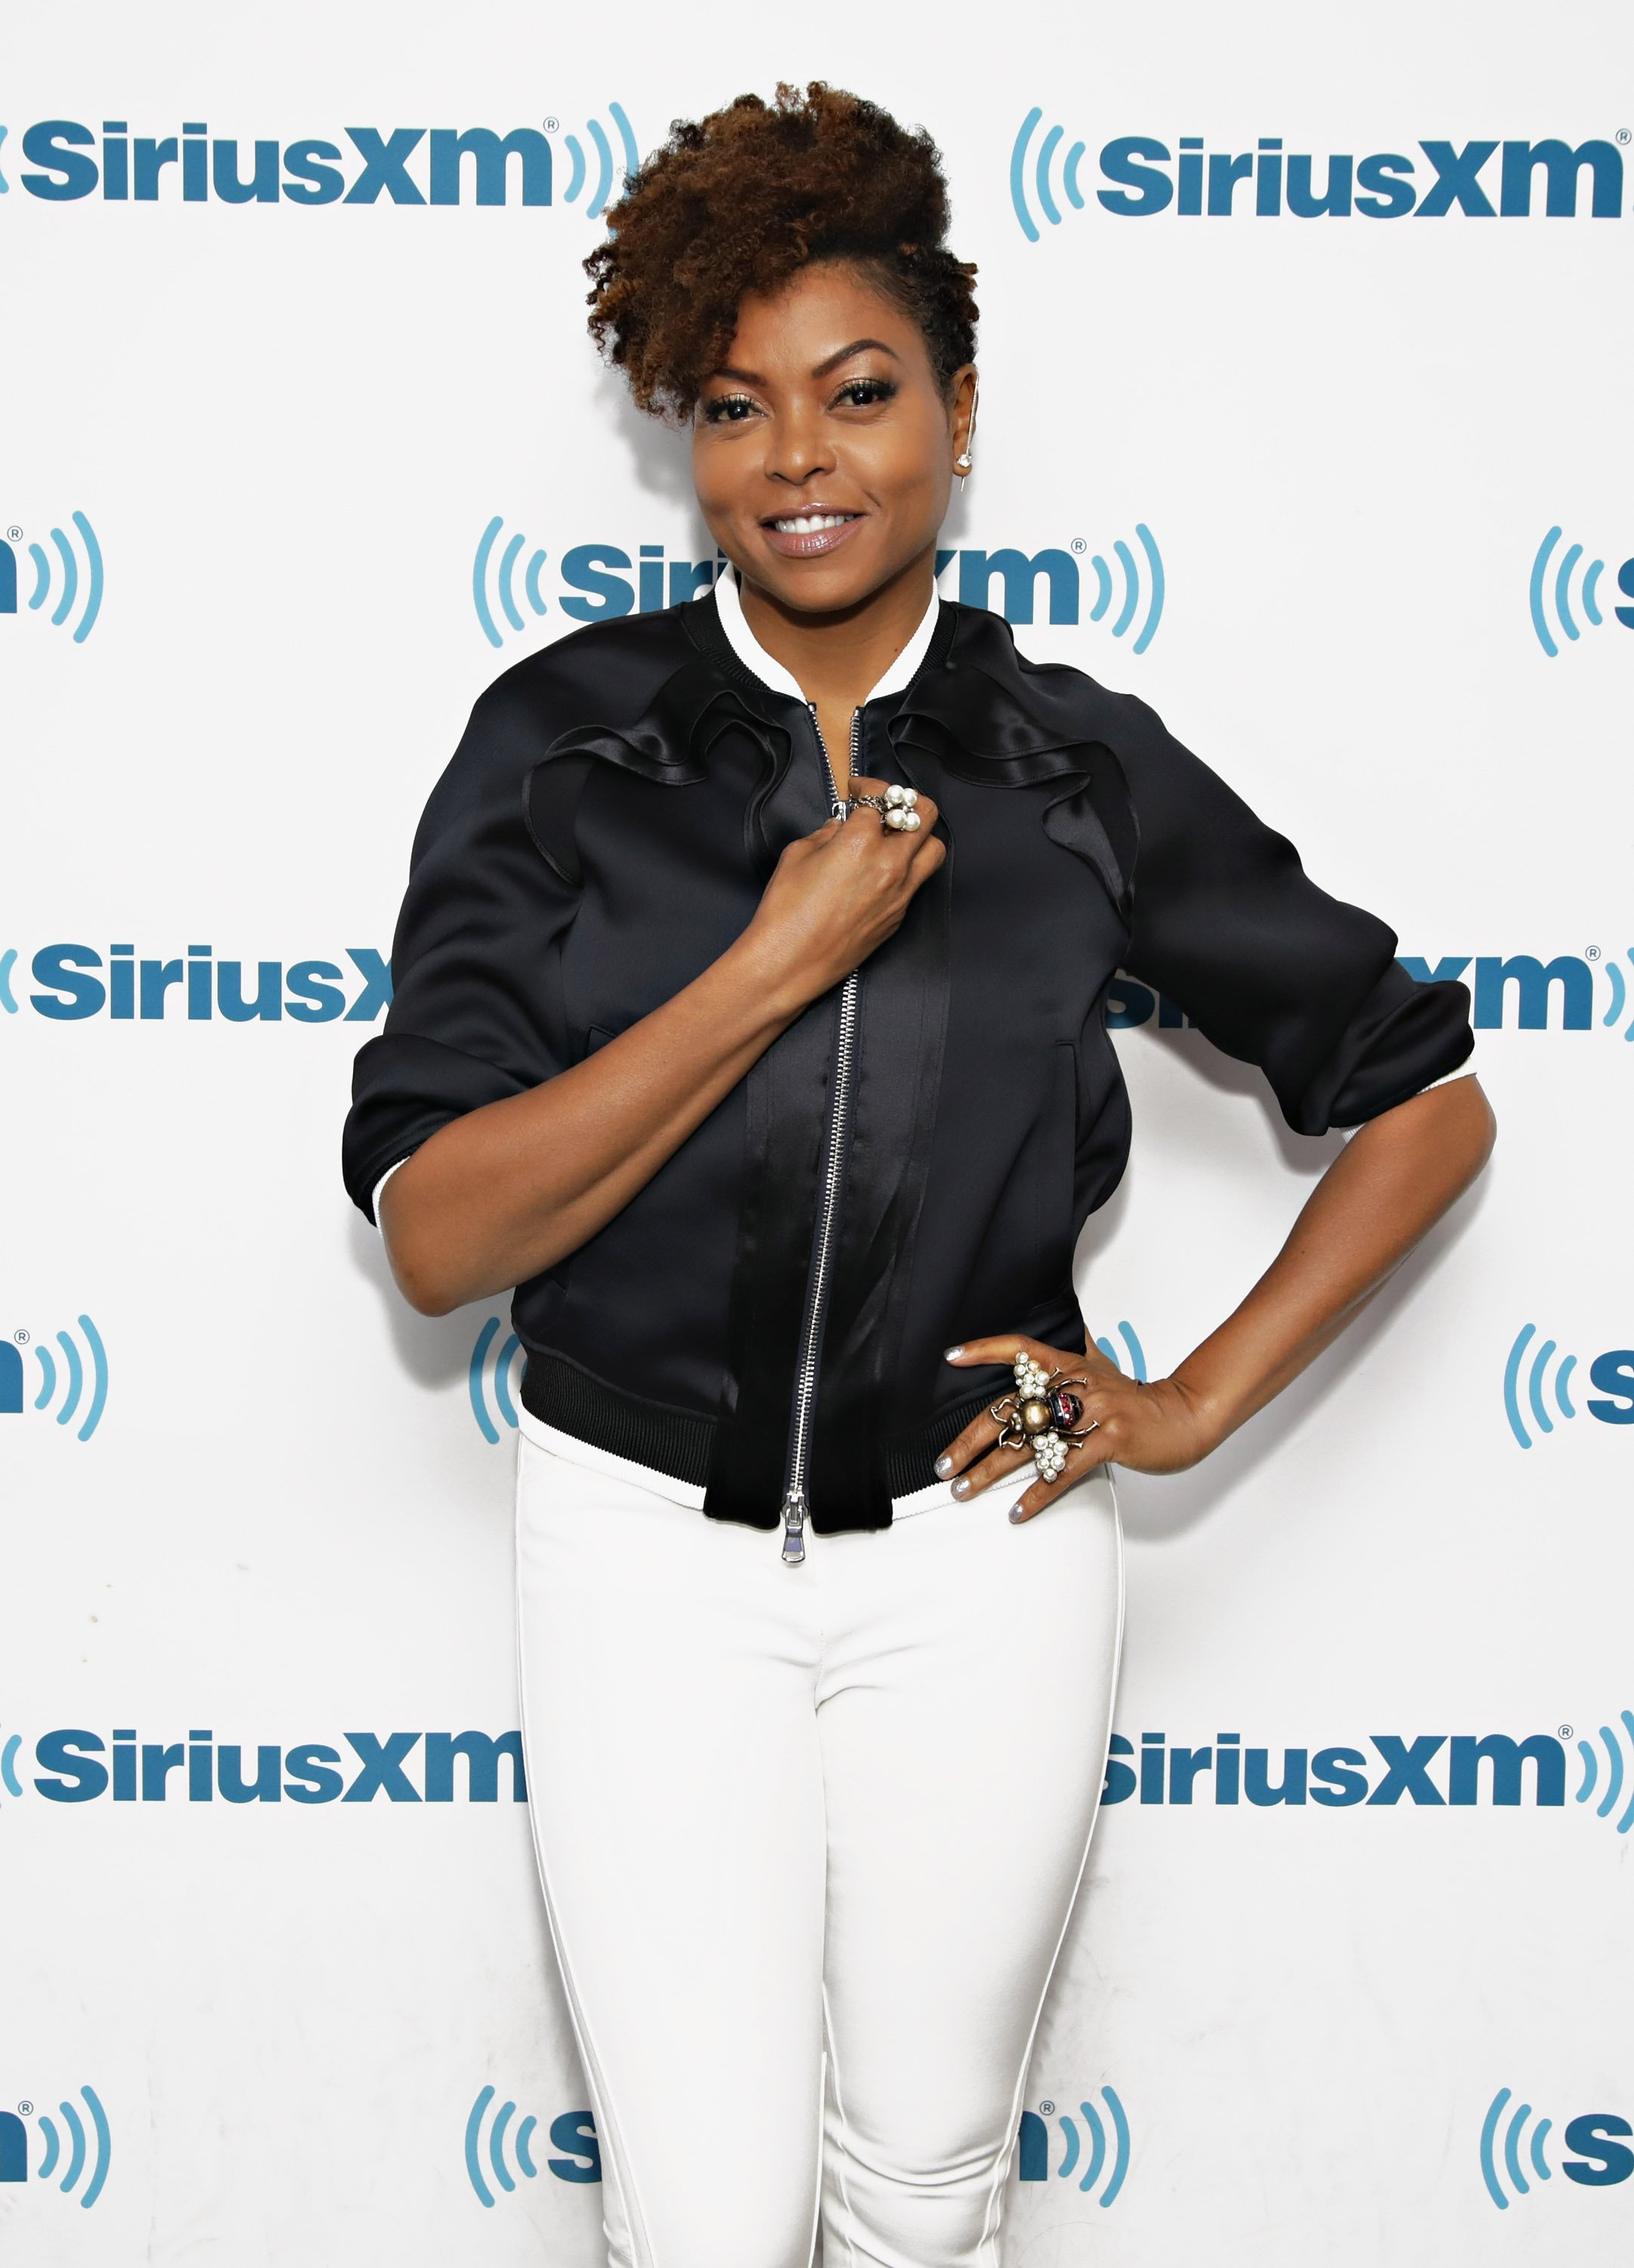 Taraji P. Henson at the SiriusXM Studios on Oct. 6, 2017 in New York City. | Photo: Getty Images